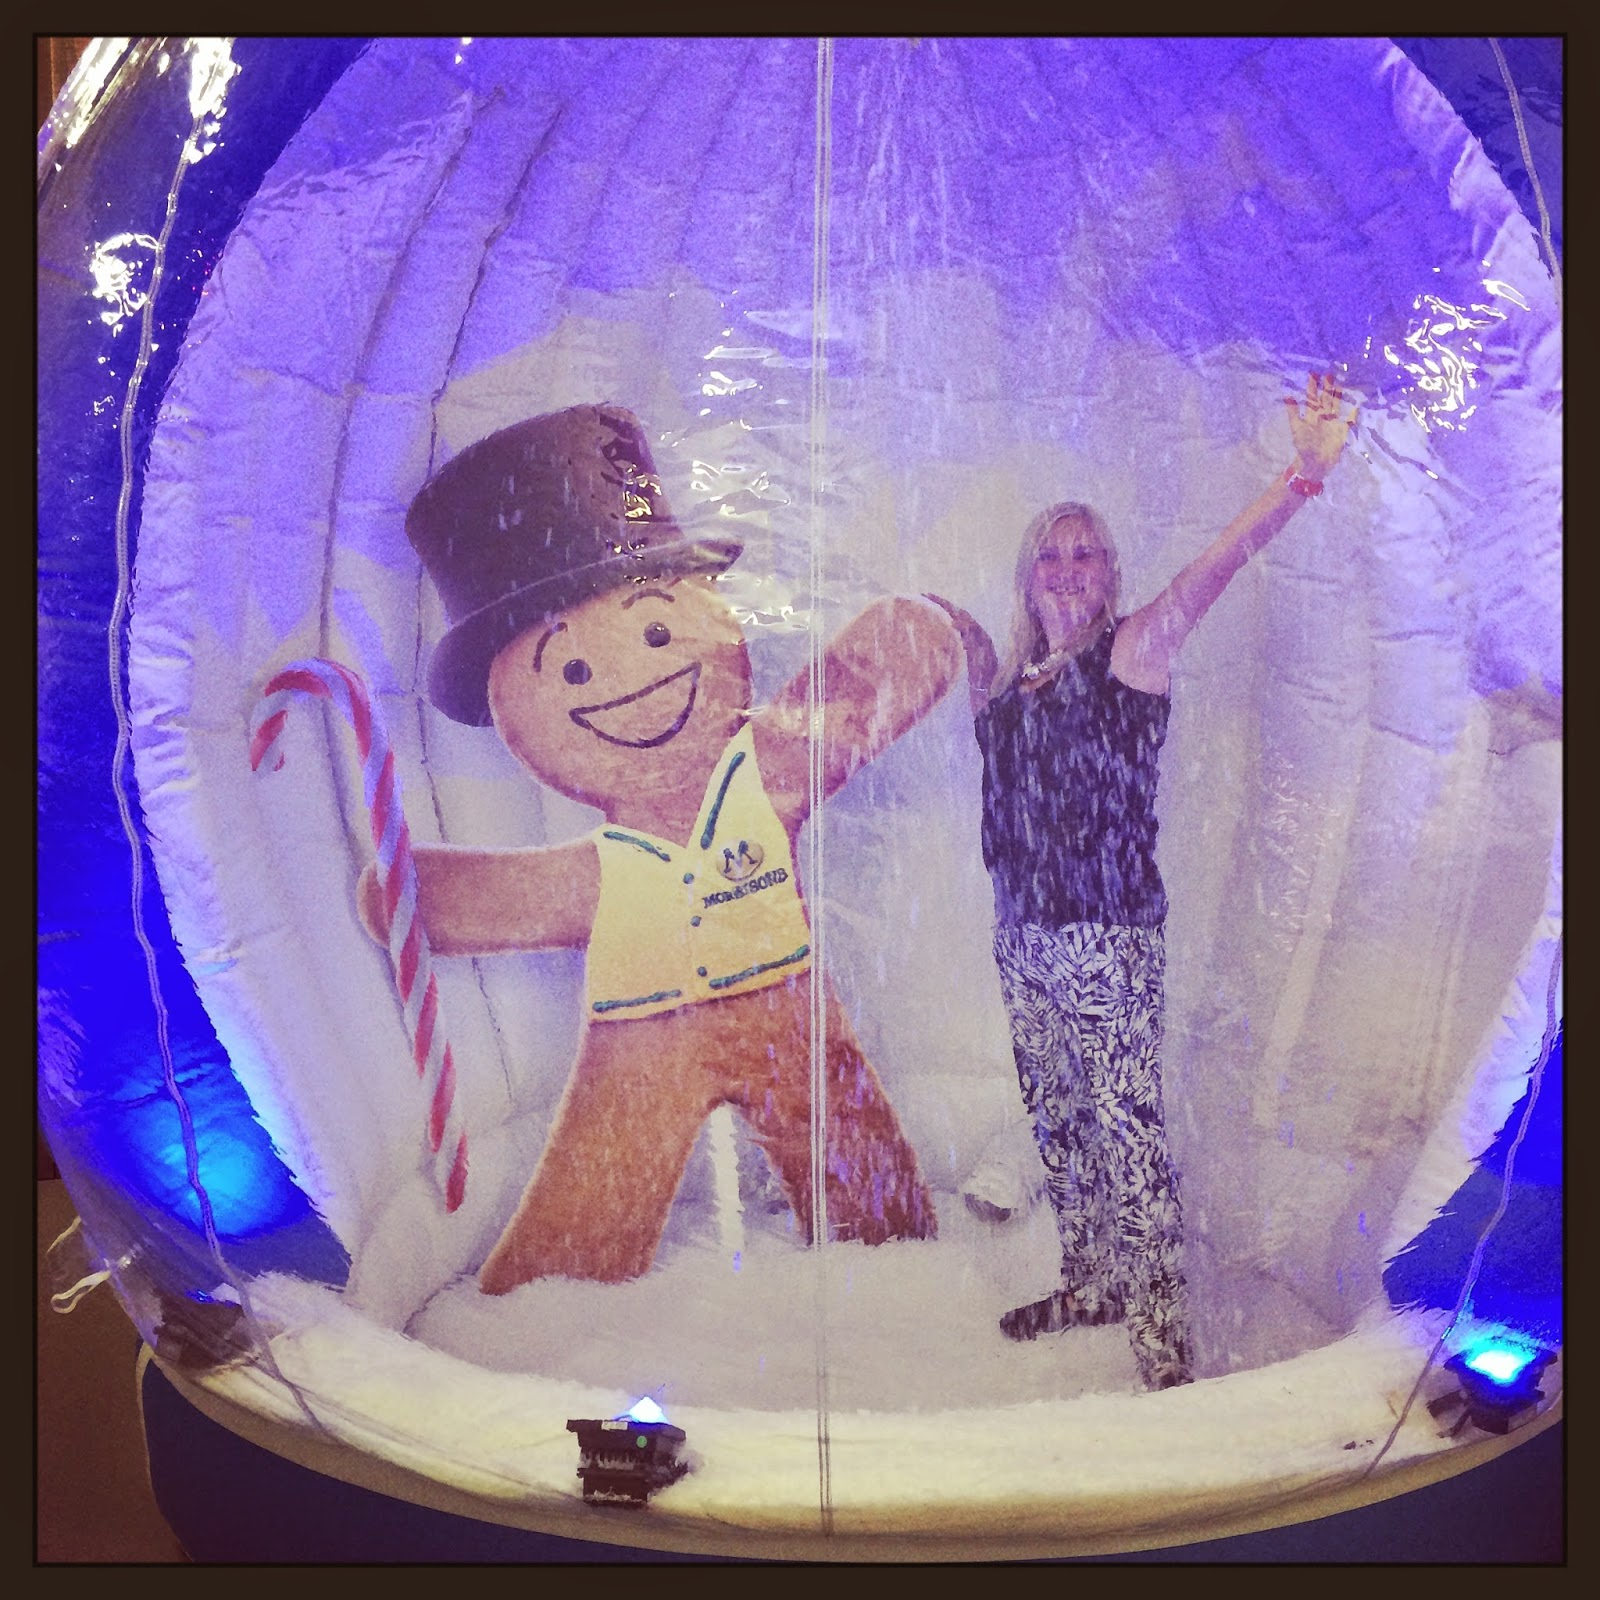 Ginger and blogger madmumof7 in snowglobe at Morrisons Christmas event